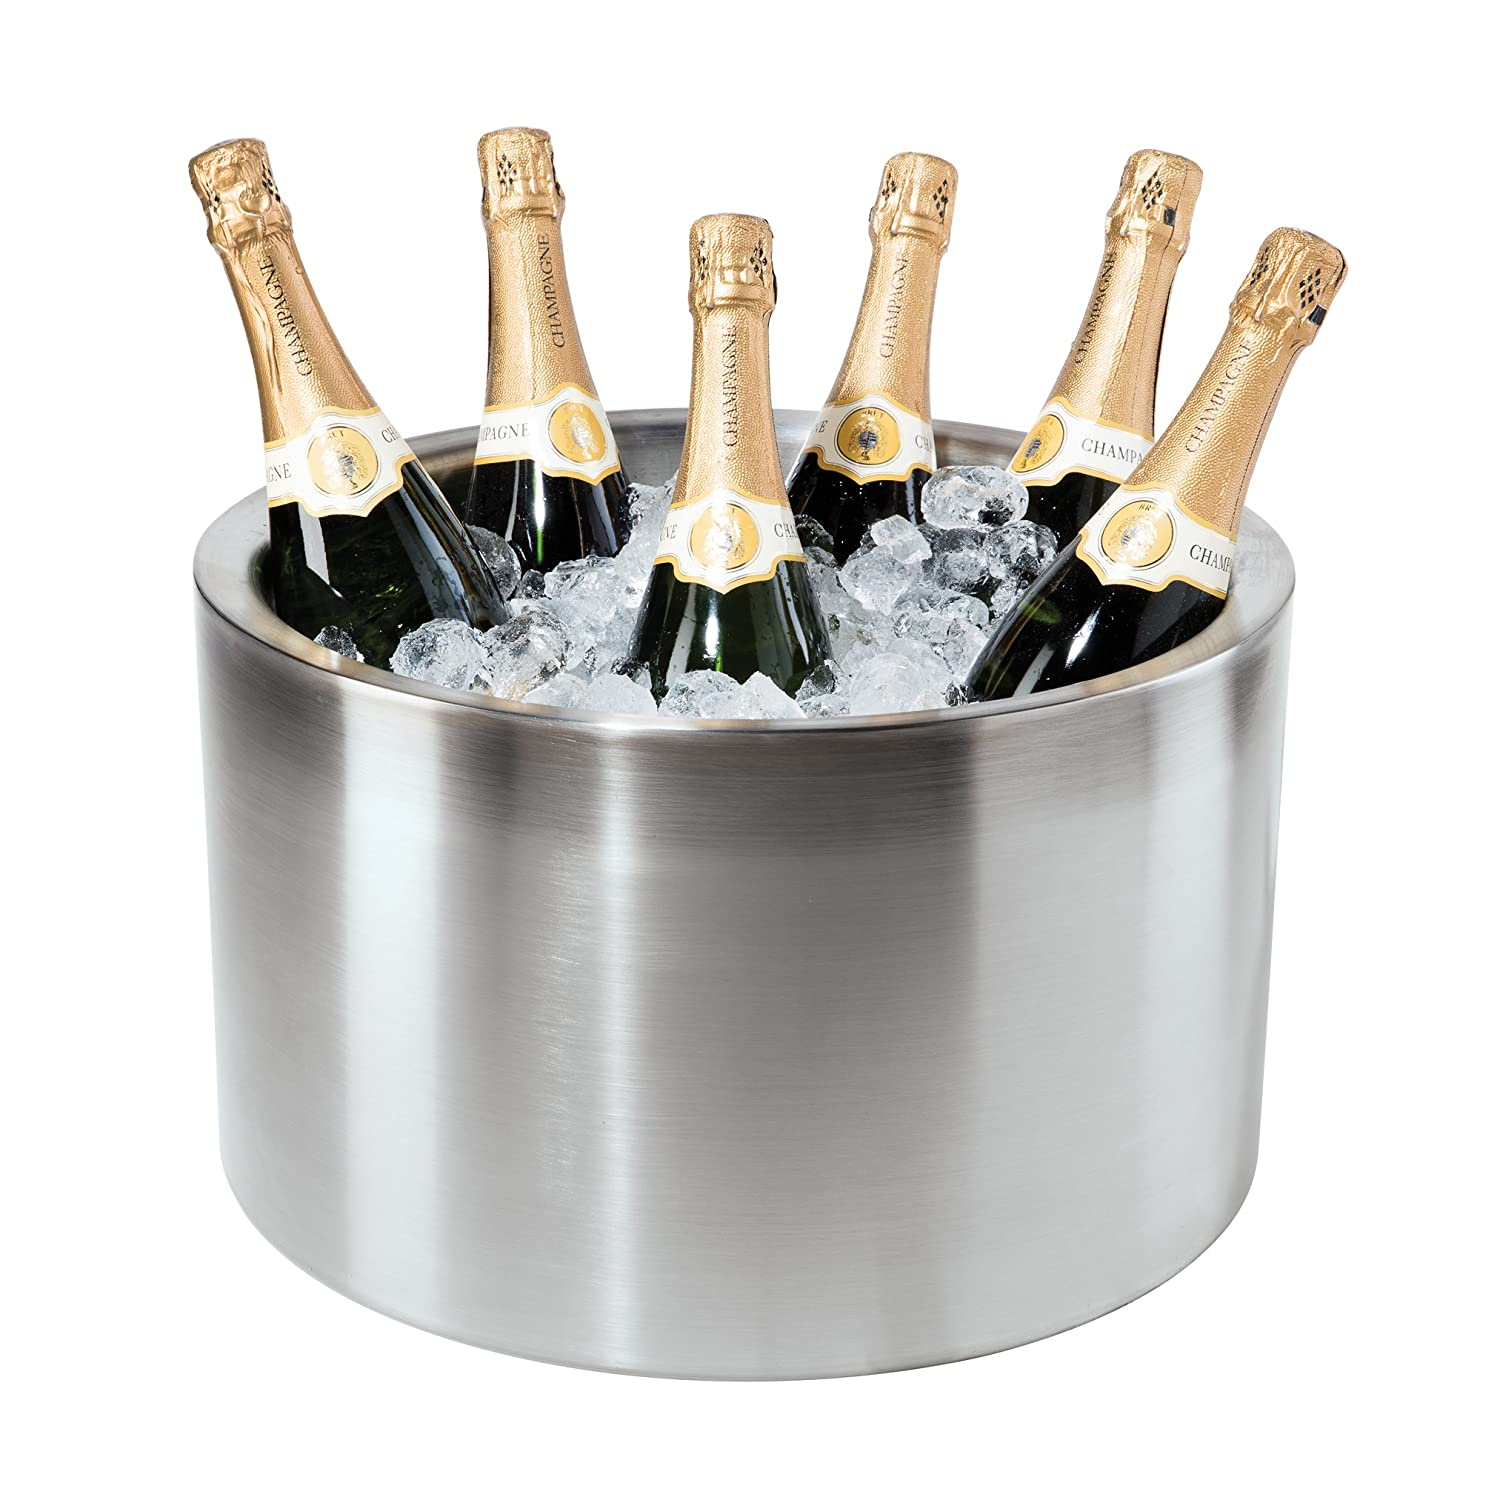 Oggi Double Walled Insulated Stainless Steel Party Tub-Holds up to 12 bottles of Wine or Champagne 7452